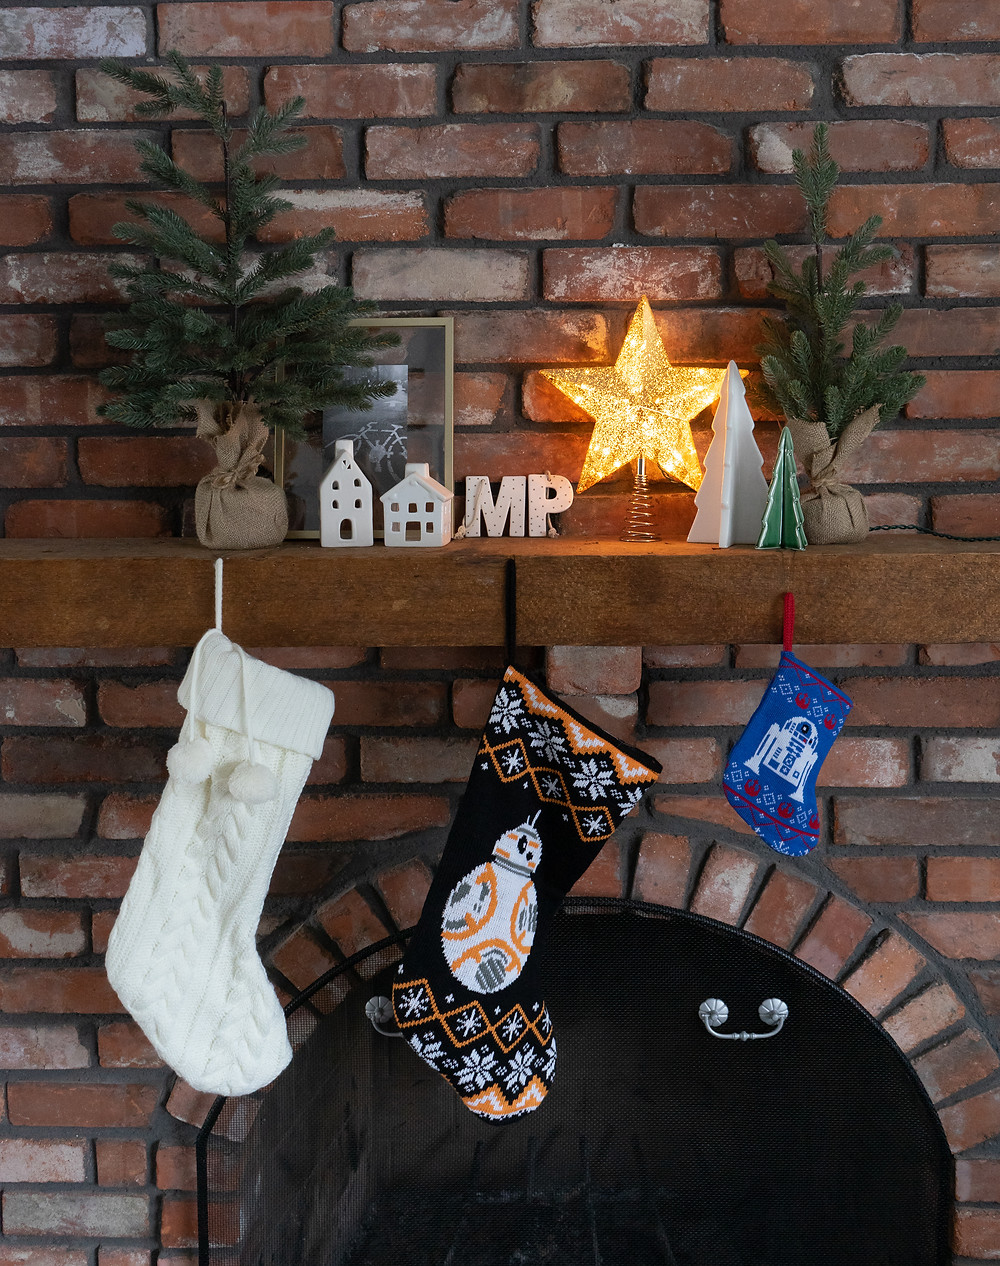 Christmas mantel with two faux trees in burlap, white ceramic houses, gold mercury star tree topper, gold picture frame, M and P white and gold dotted ornaments with a white and green ceramic tree. Hanging from the mantel is a white knit stocking, and two Star Wars stockings. All sitting on a red brick fireplace and wood mantel